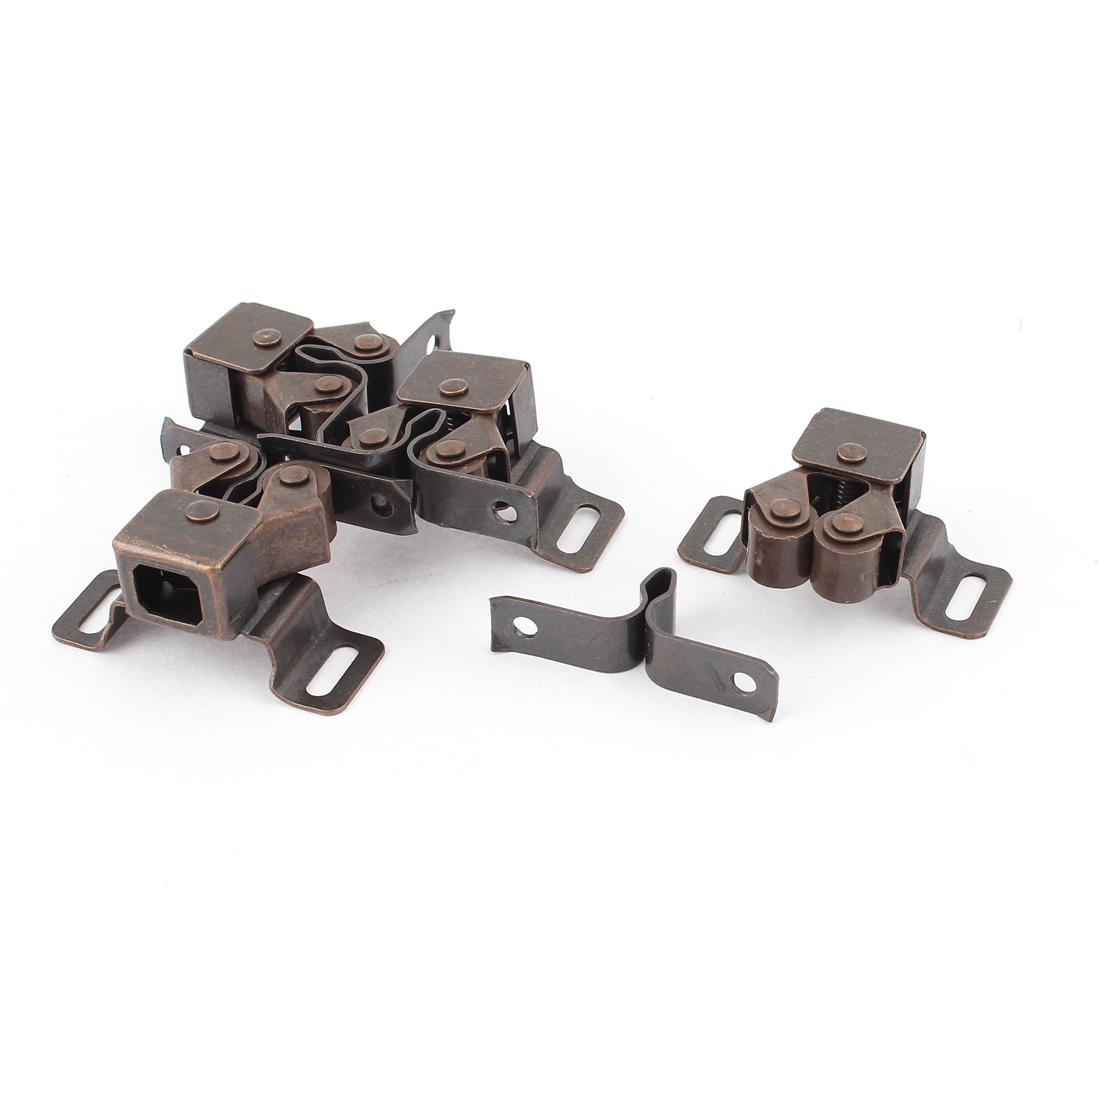 4pcs Cabinet Cupboard Double Ball Door Latch Catch Copper Tone